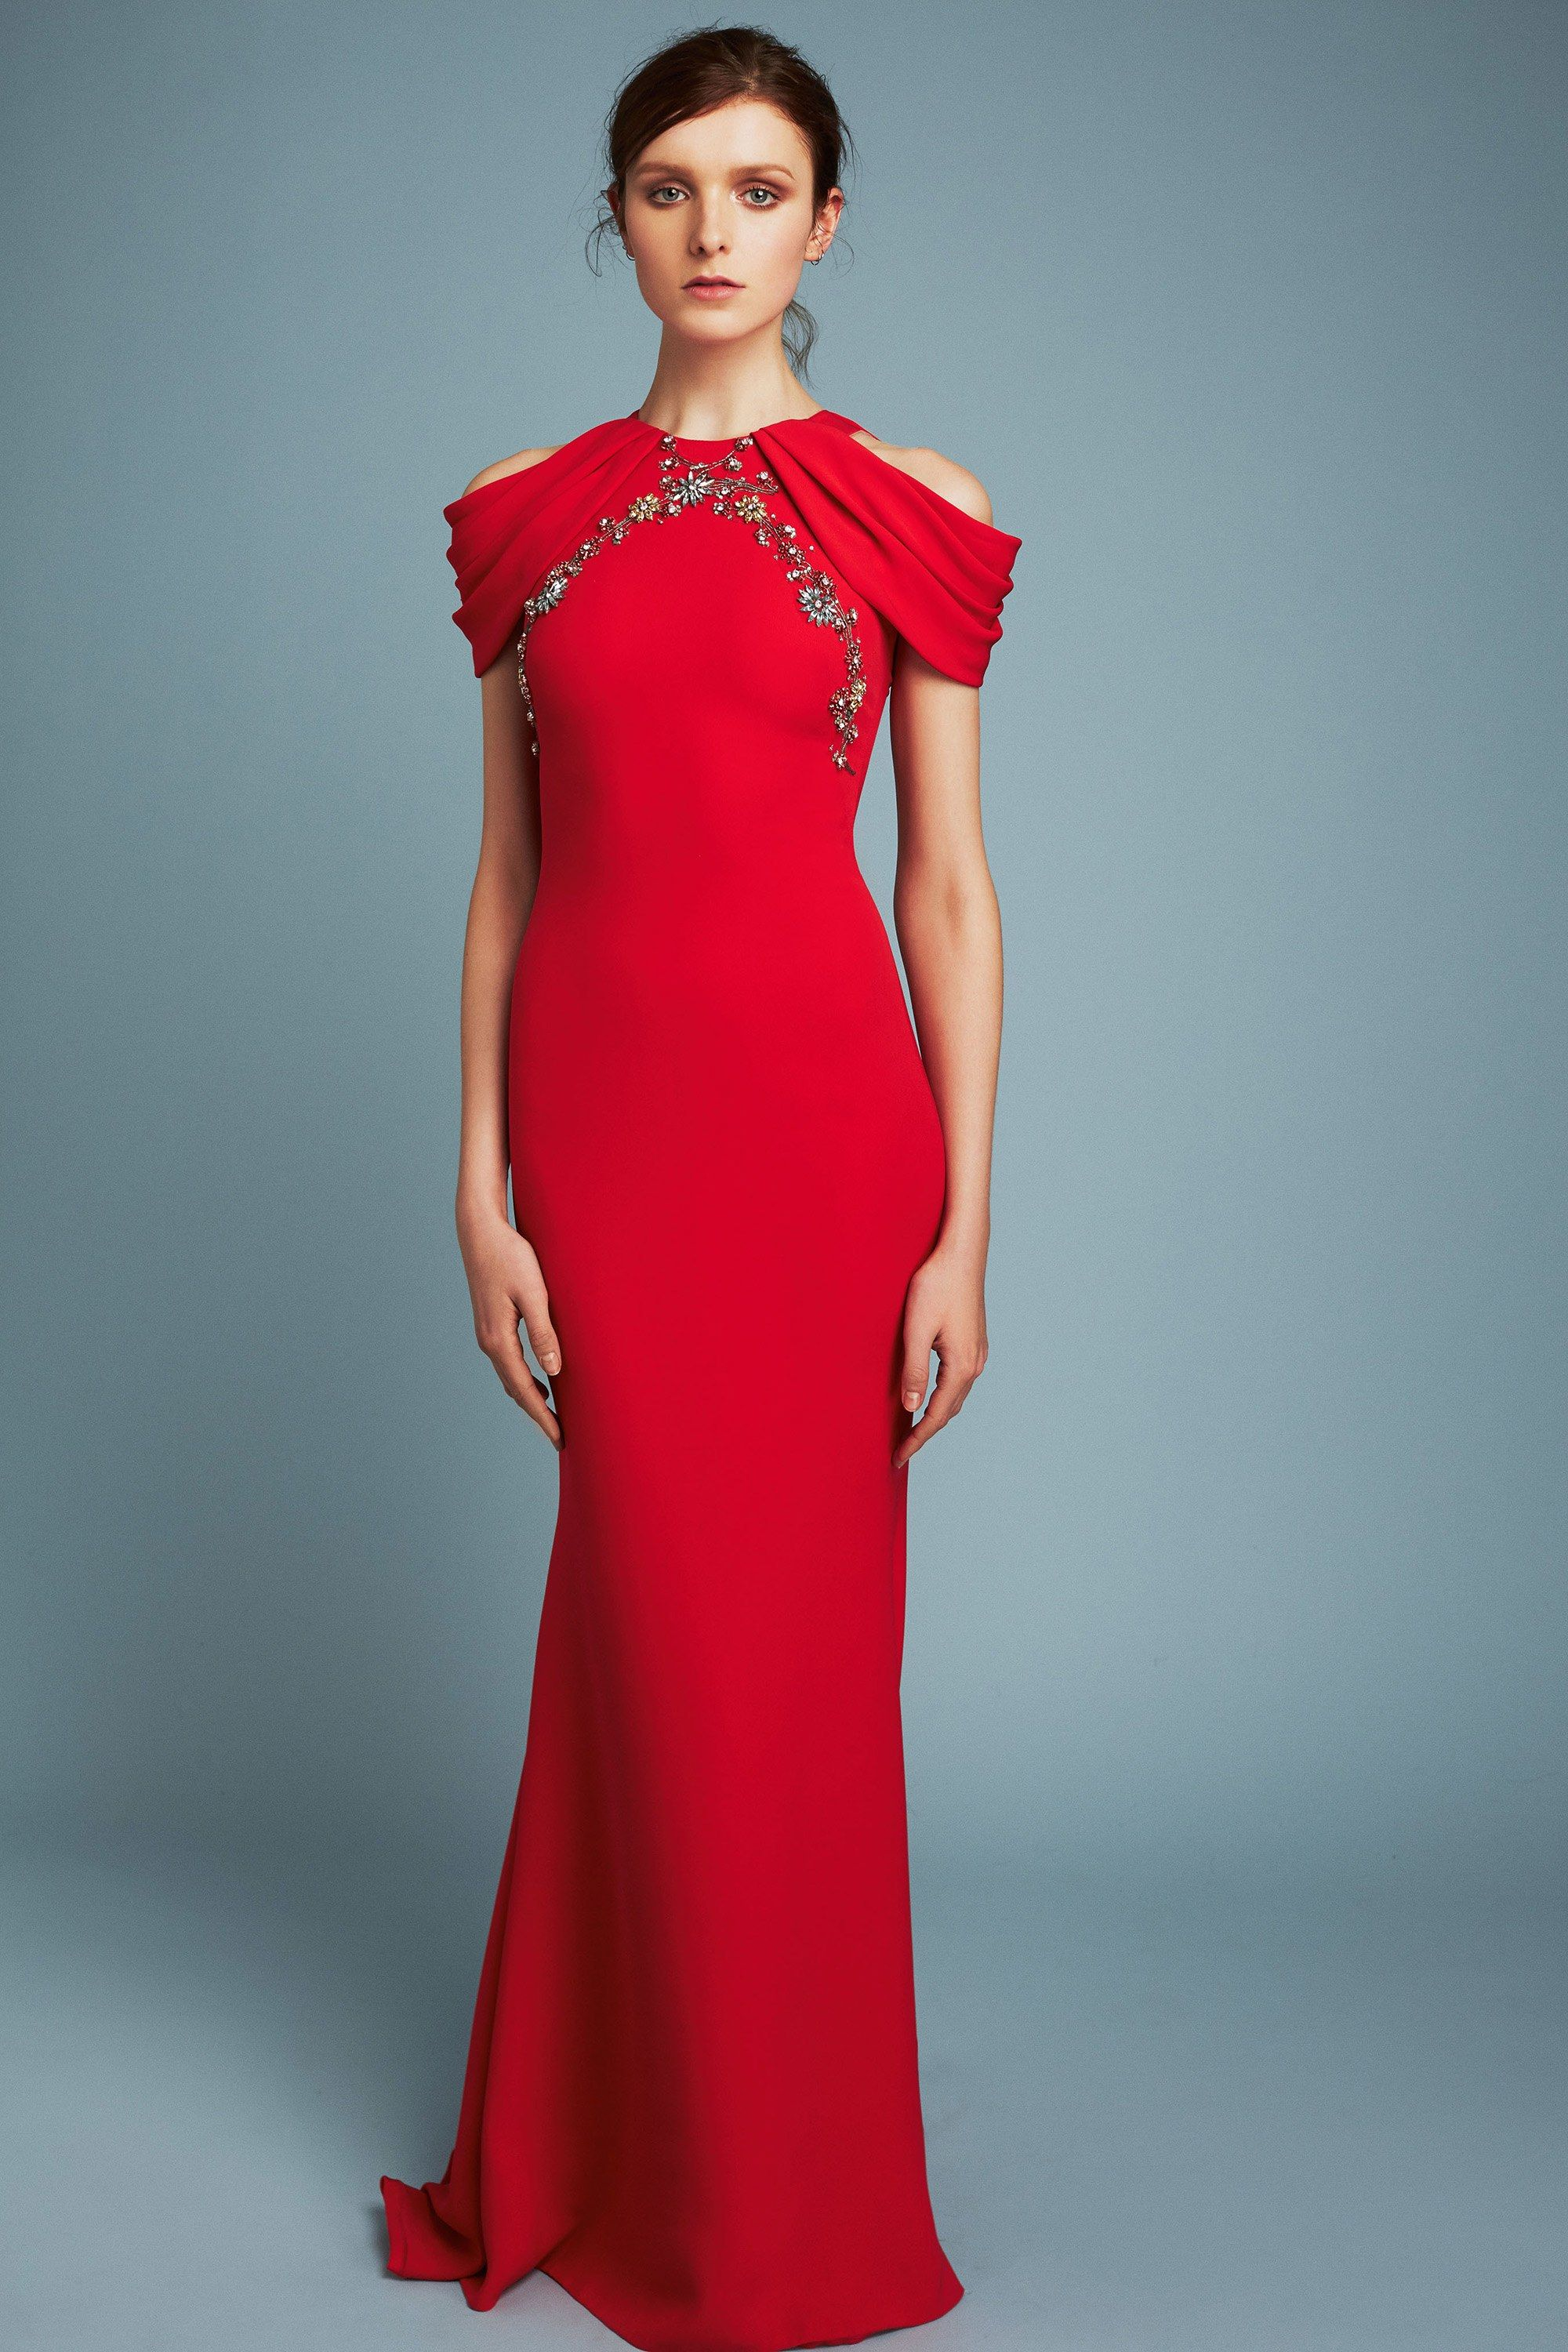 Reem acra prefall fashion show cold shoulder classy and ruffles